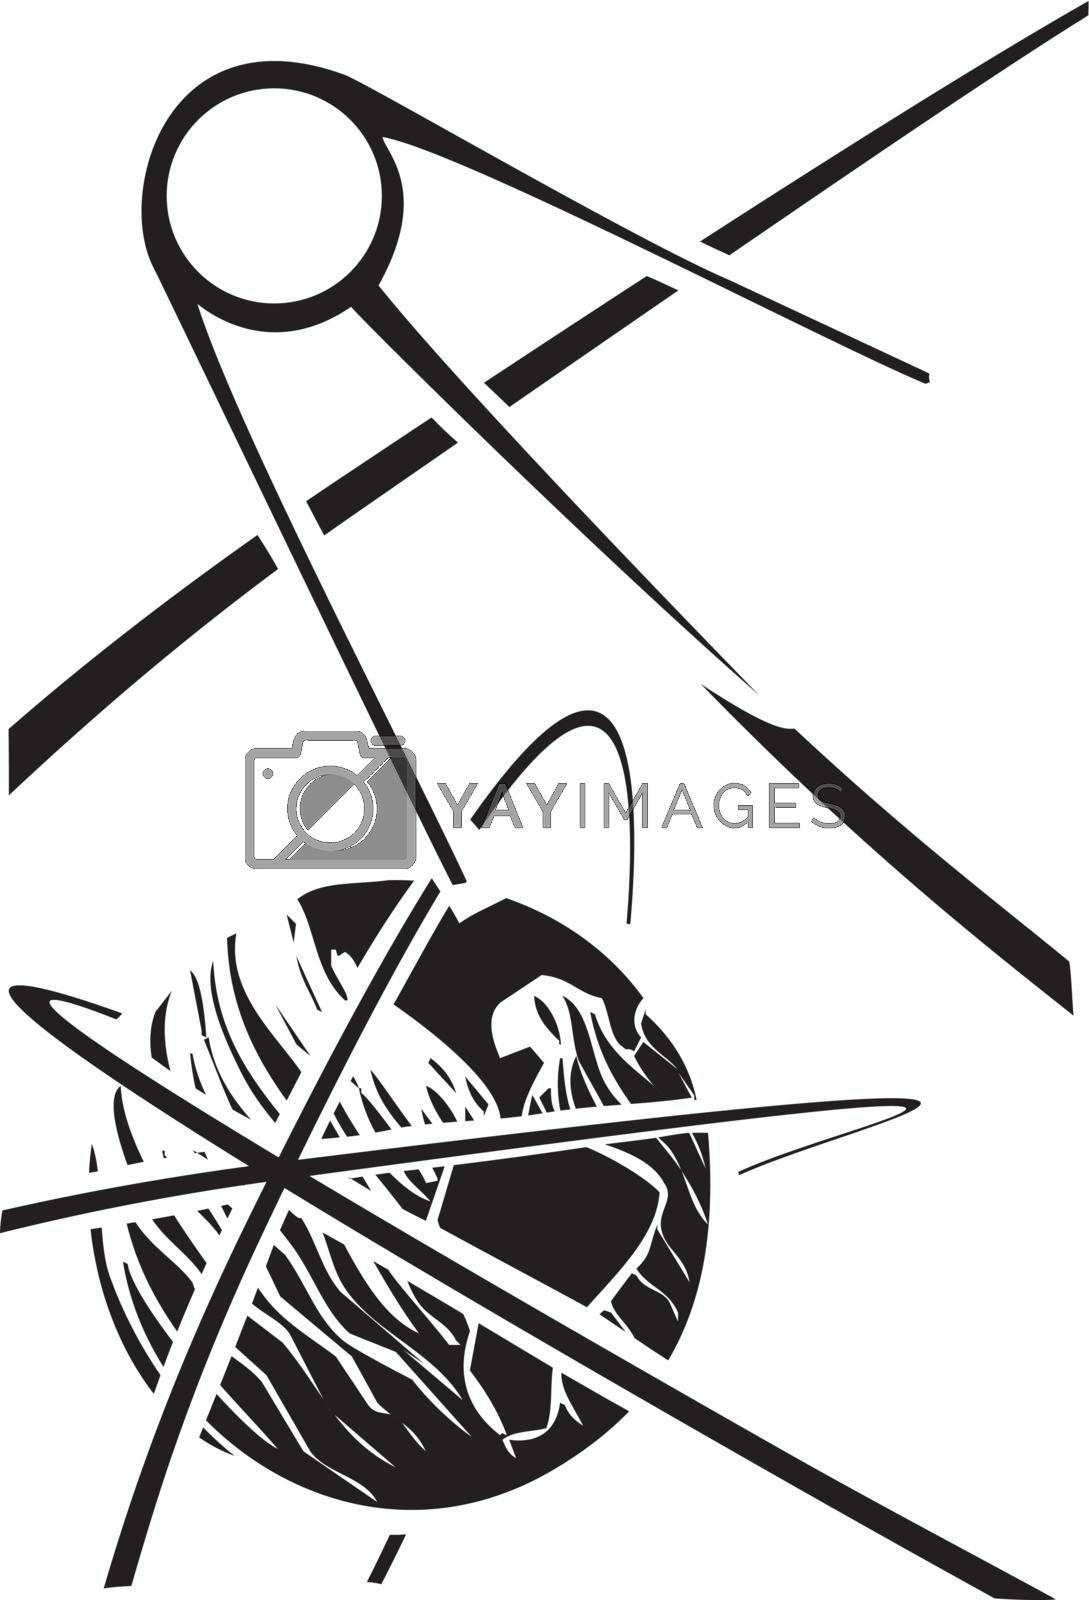 Black and White Soviet Poster style image of a Russian Sputnik satellite orbiting Earth.